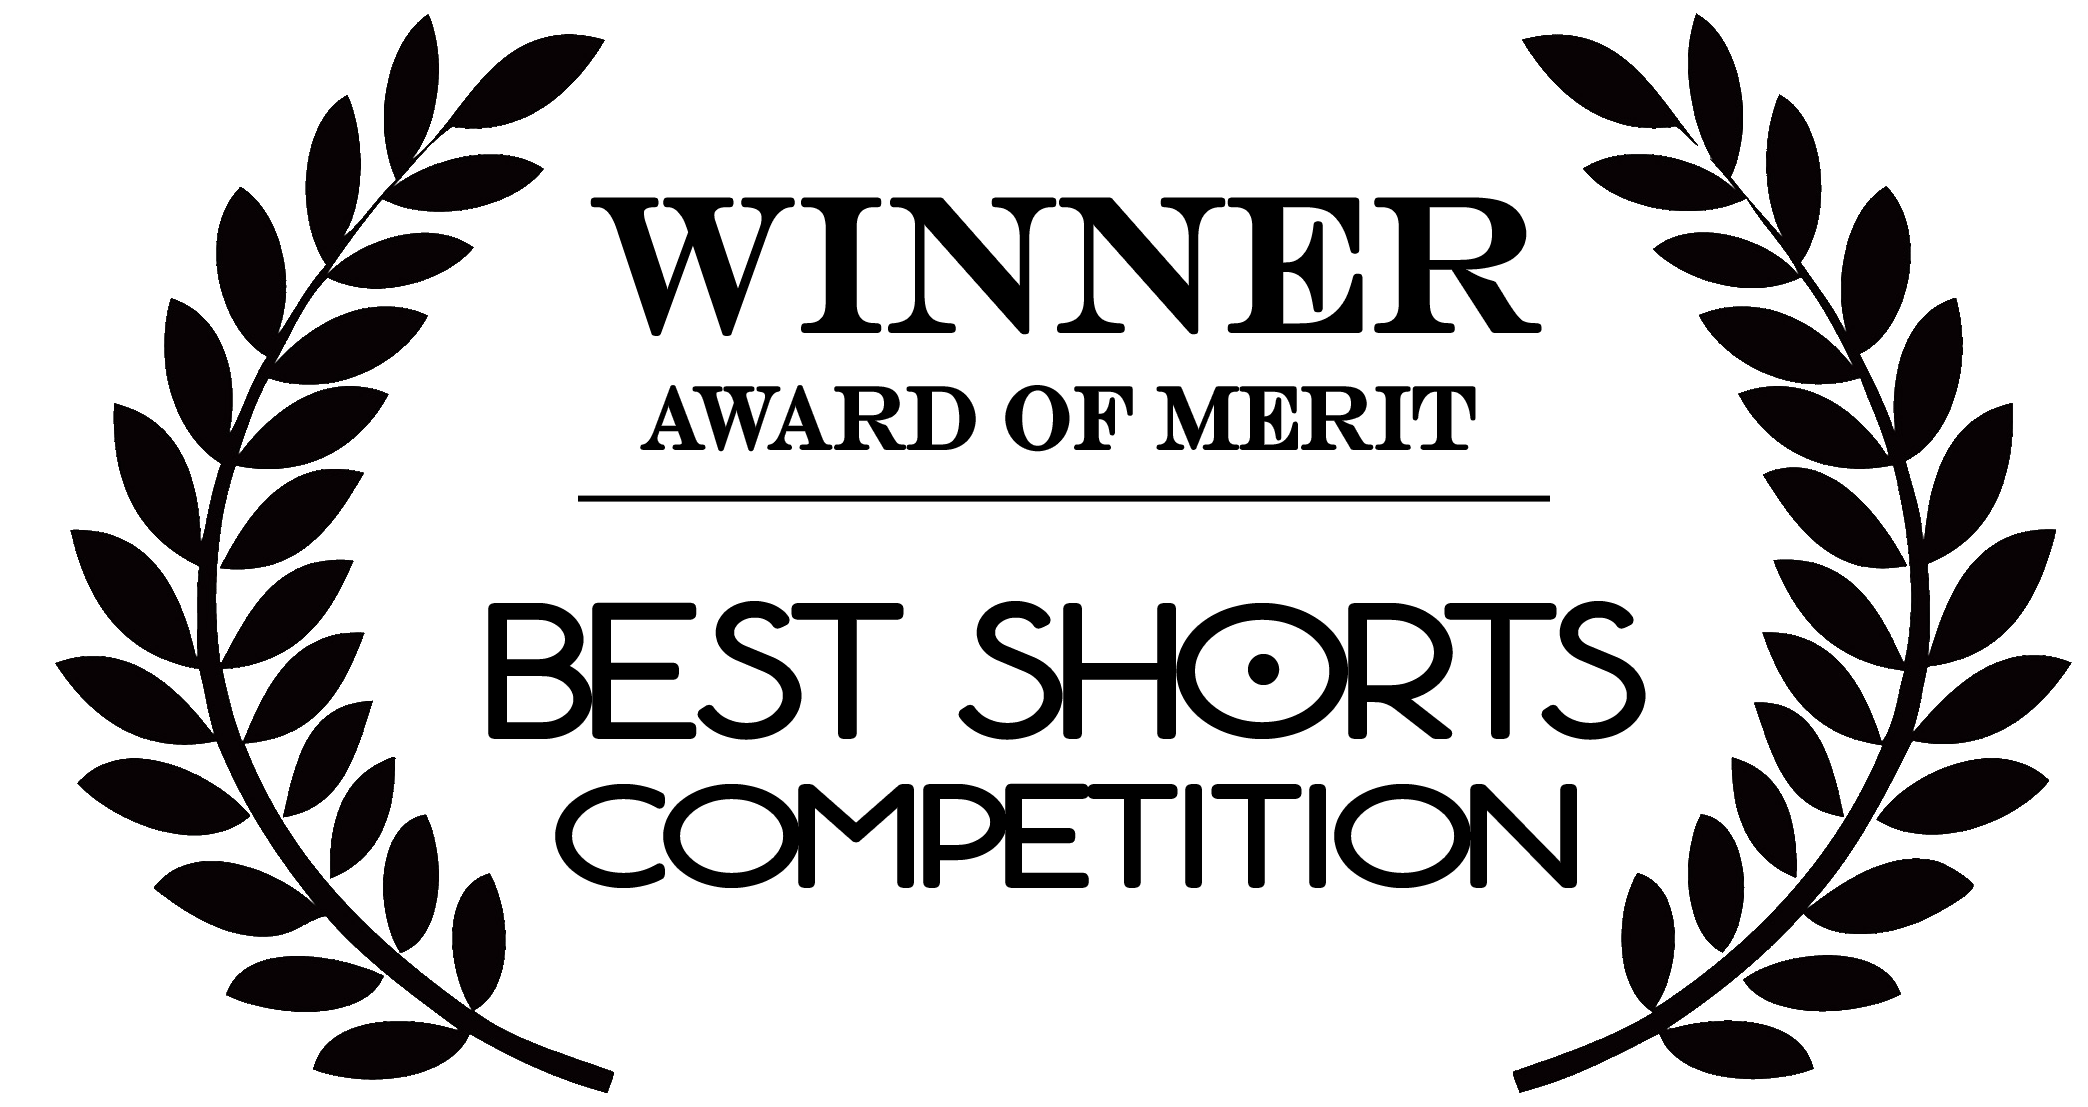 BEST-SHORTS-MERIT-Words-Black.png